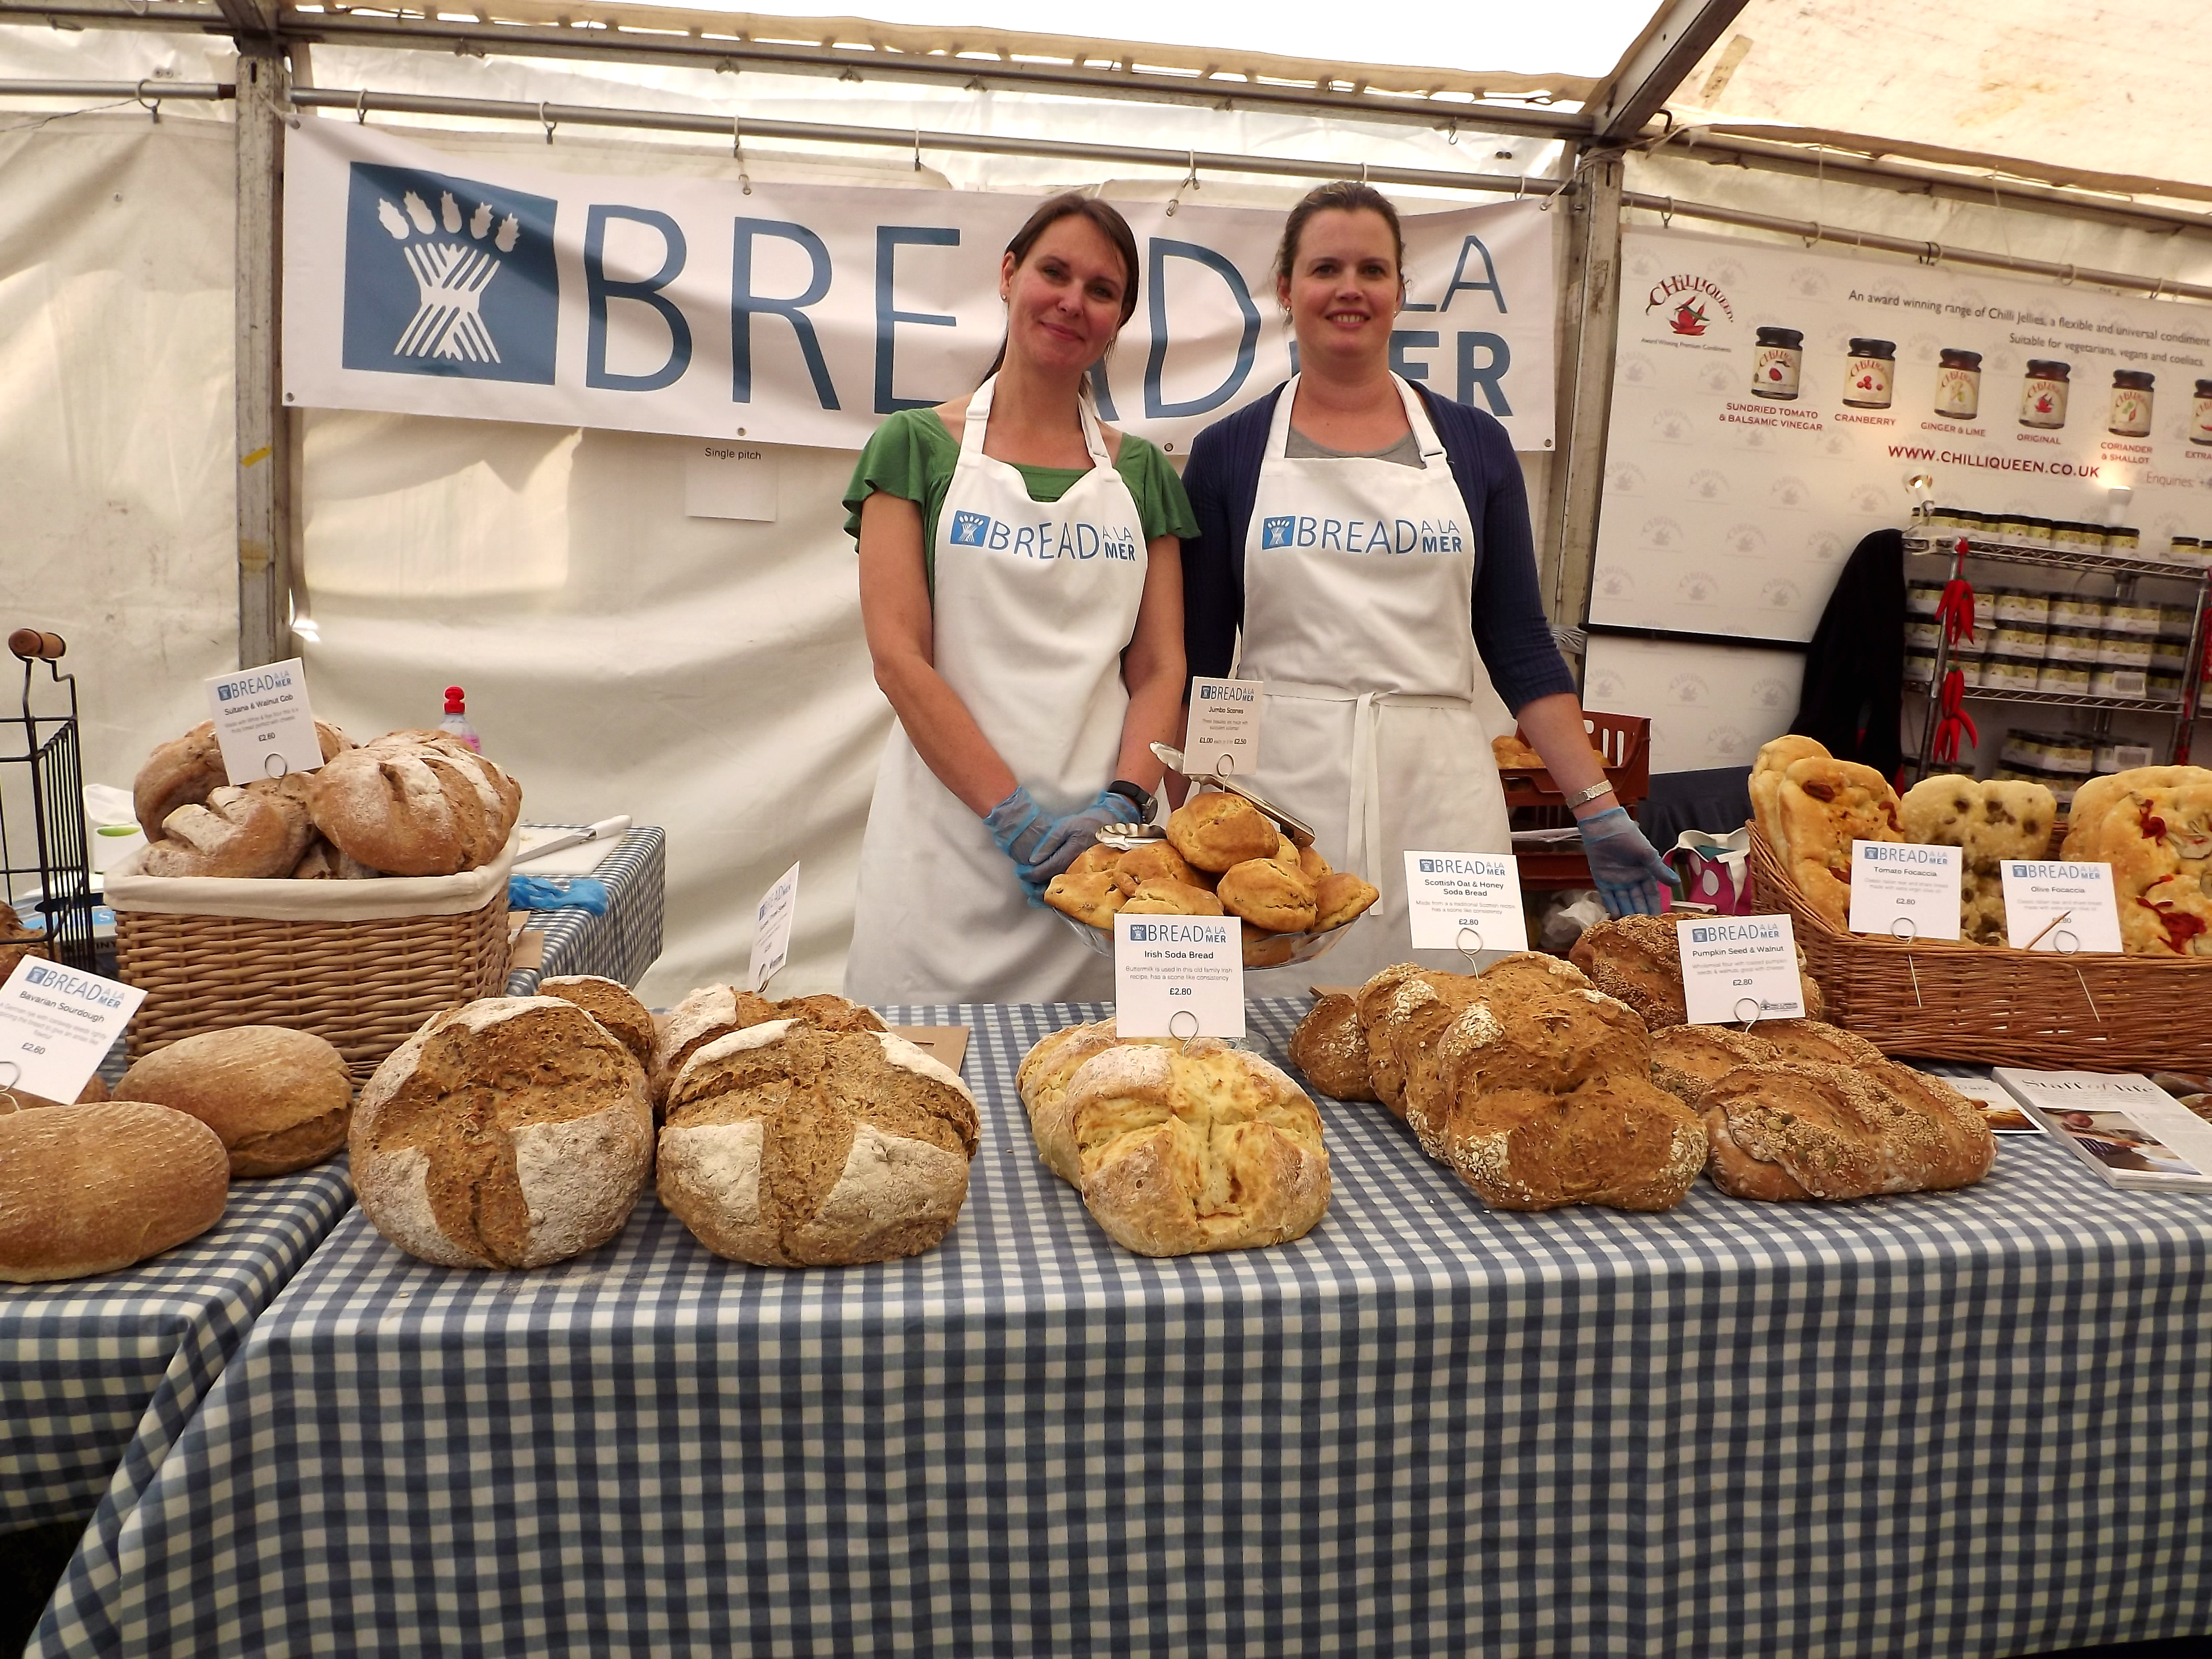 glynde food festival bread a la mer lovely ladies